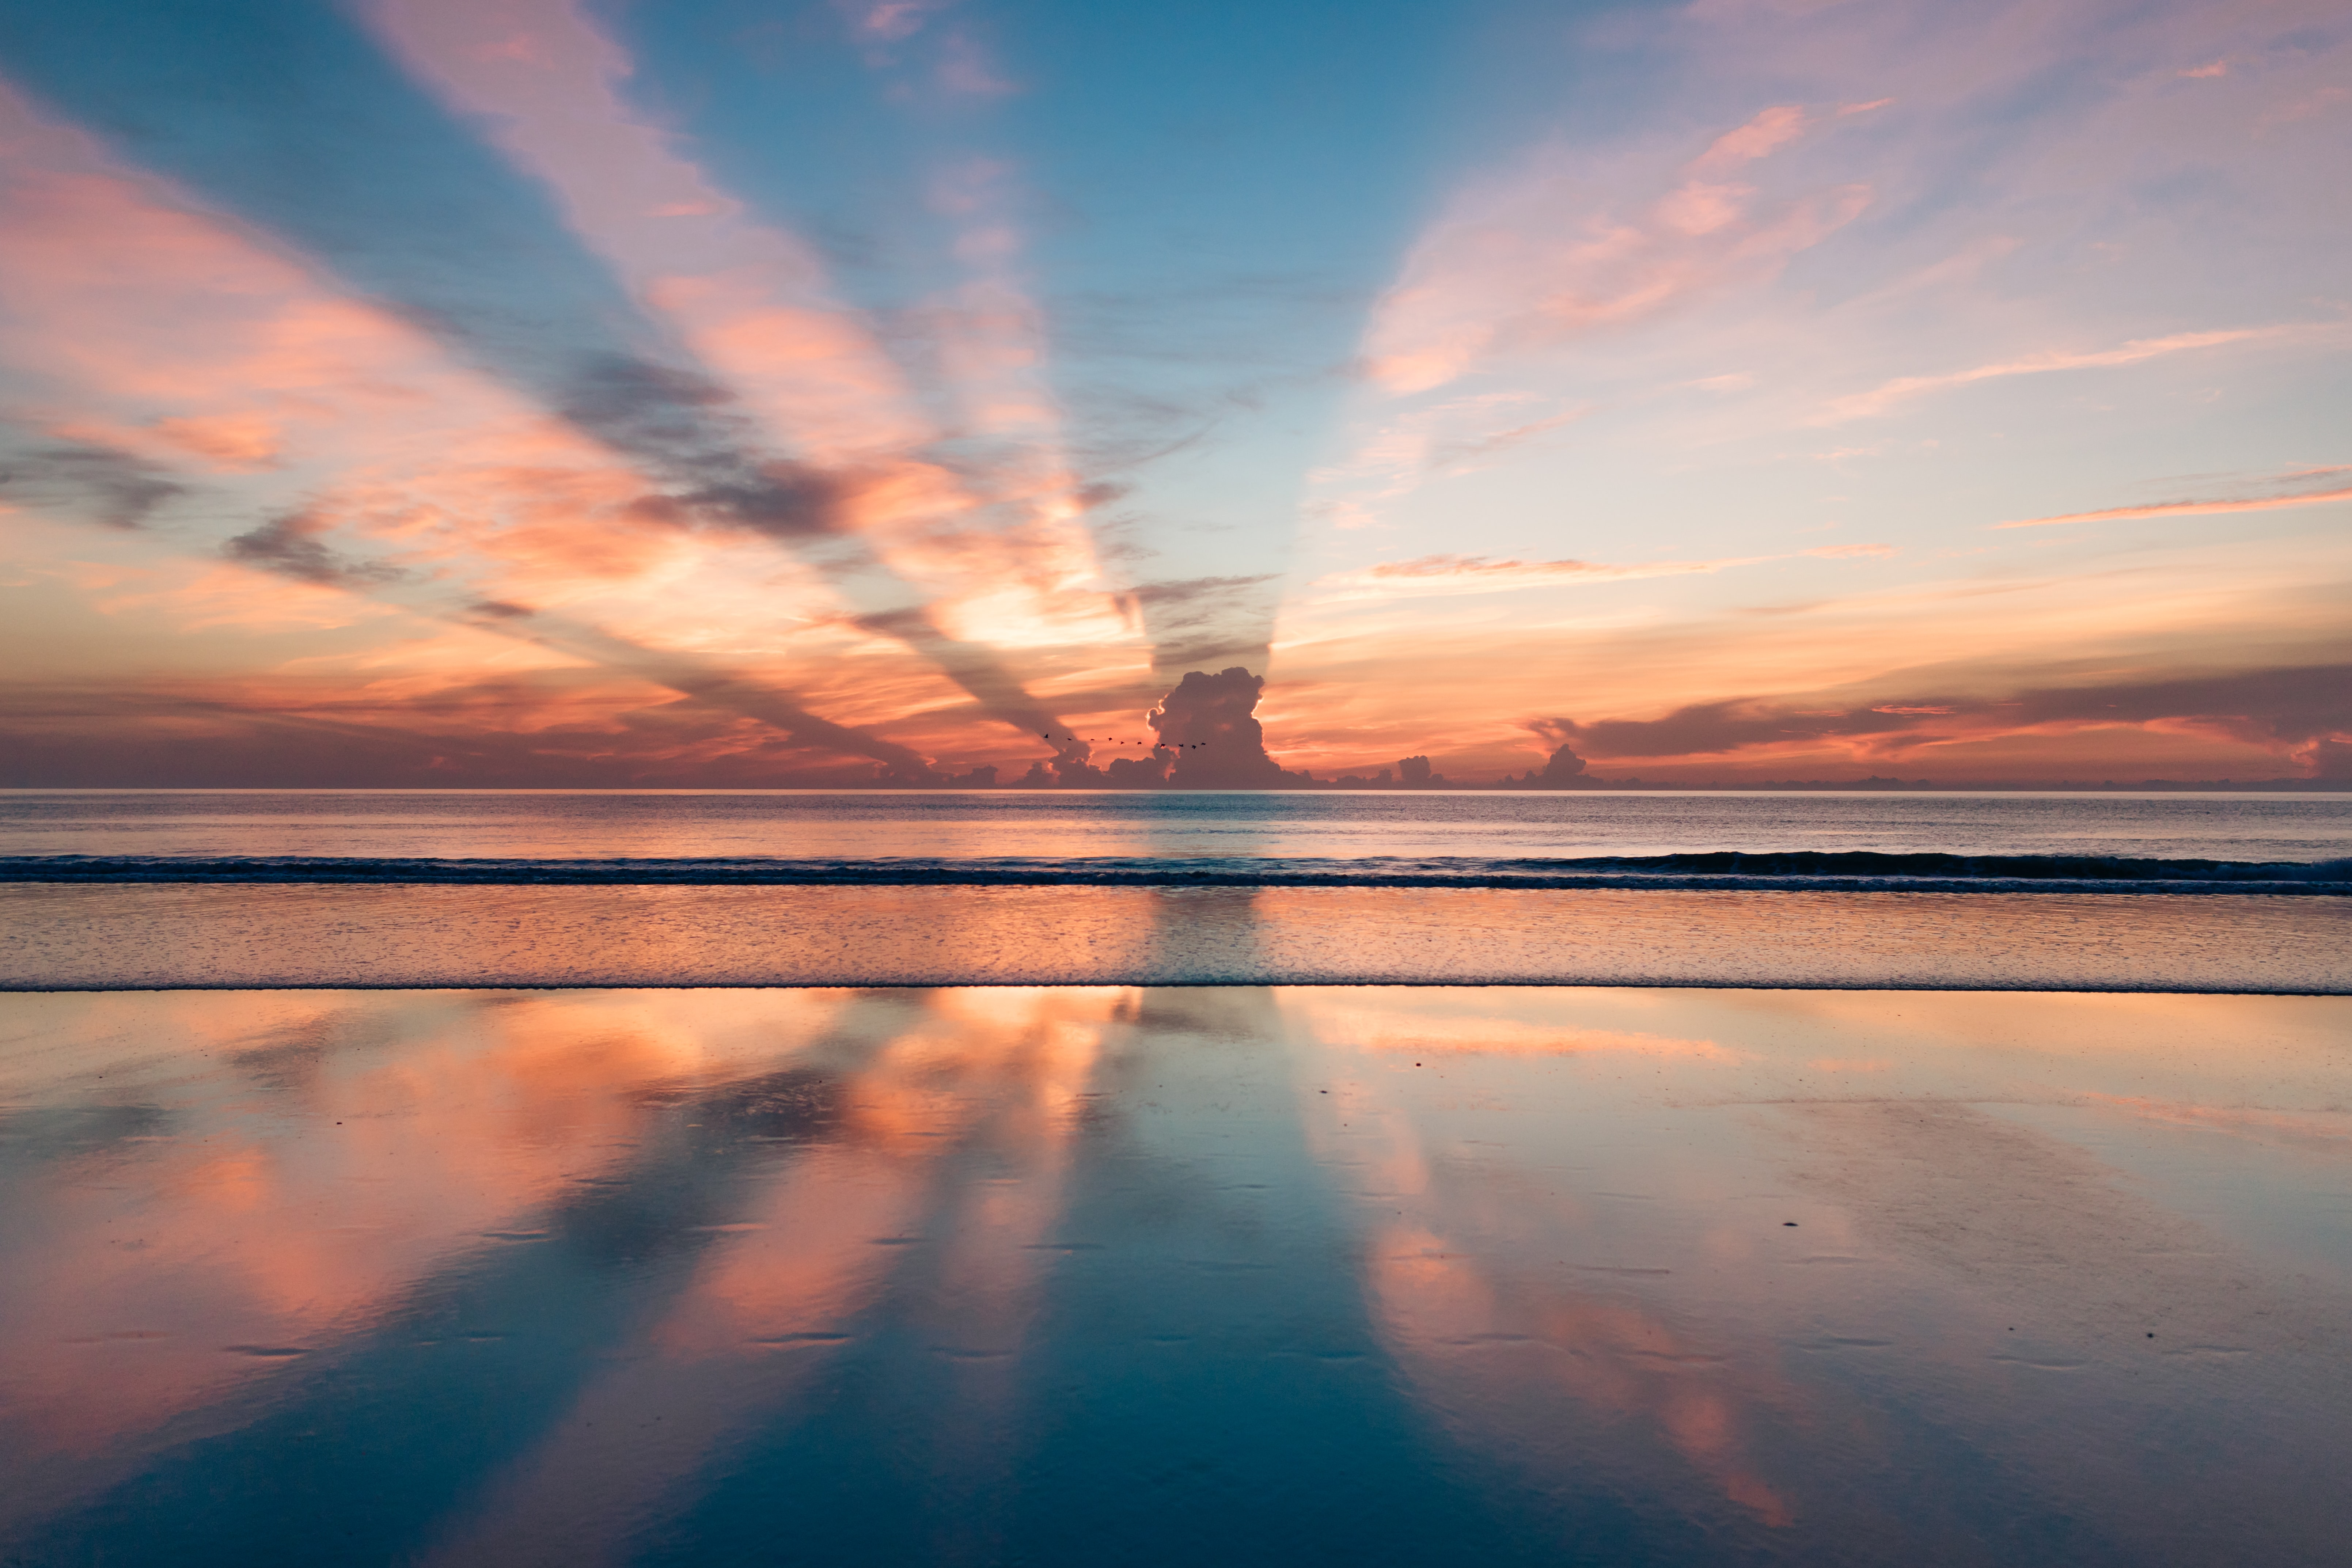 Rays from the sunset burst through the Daytona Beach clouds and reflect perfectly on the calm sea waters